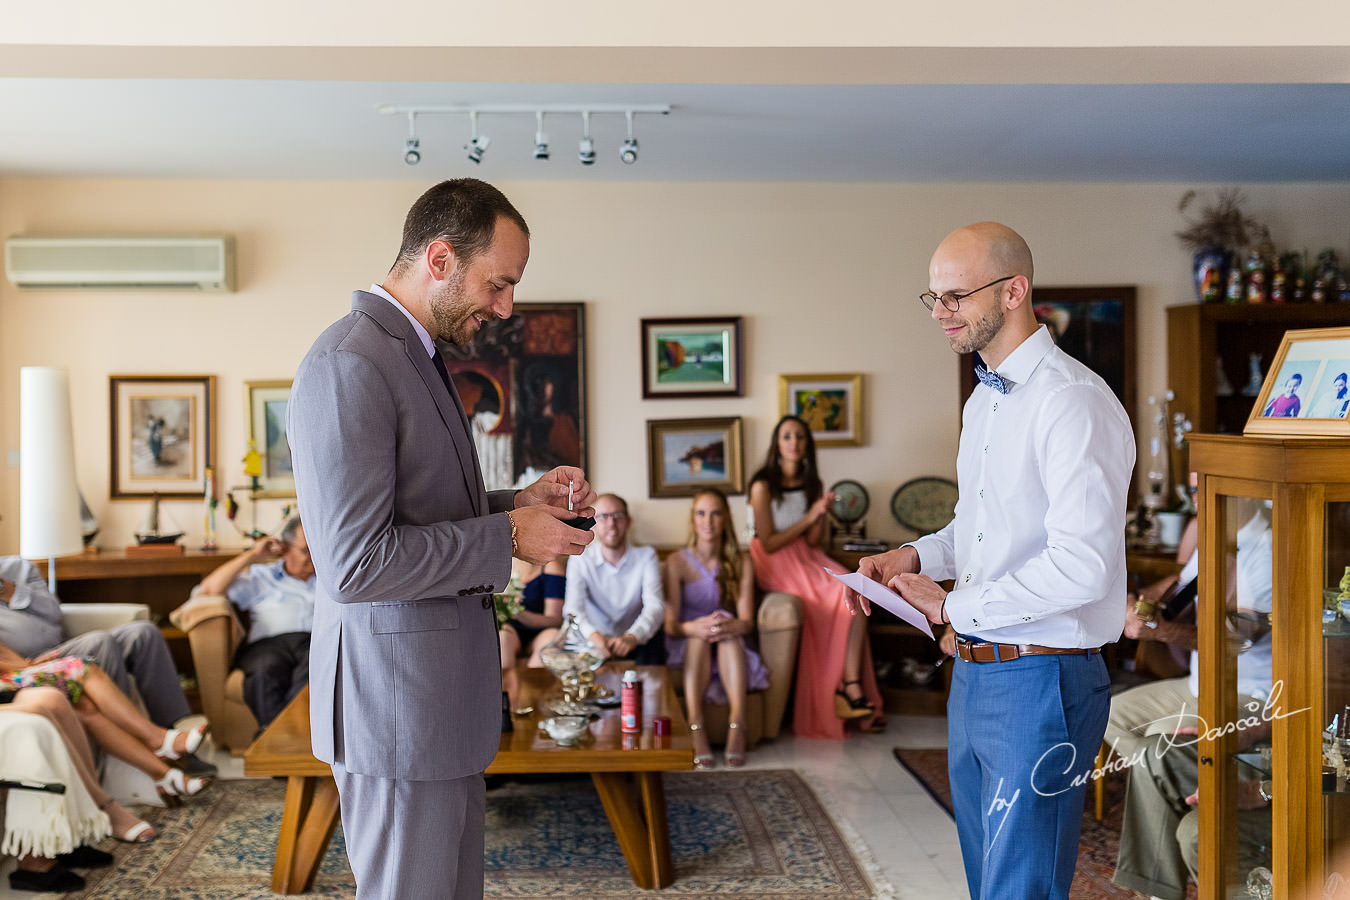 Groom's preparations captured by Cyprus Photographer Cristian Dascalu during a lovely wedding at St. Raphael Resort in Limassol, Cyprus.